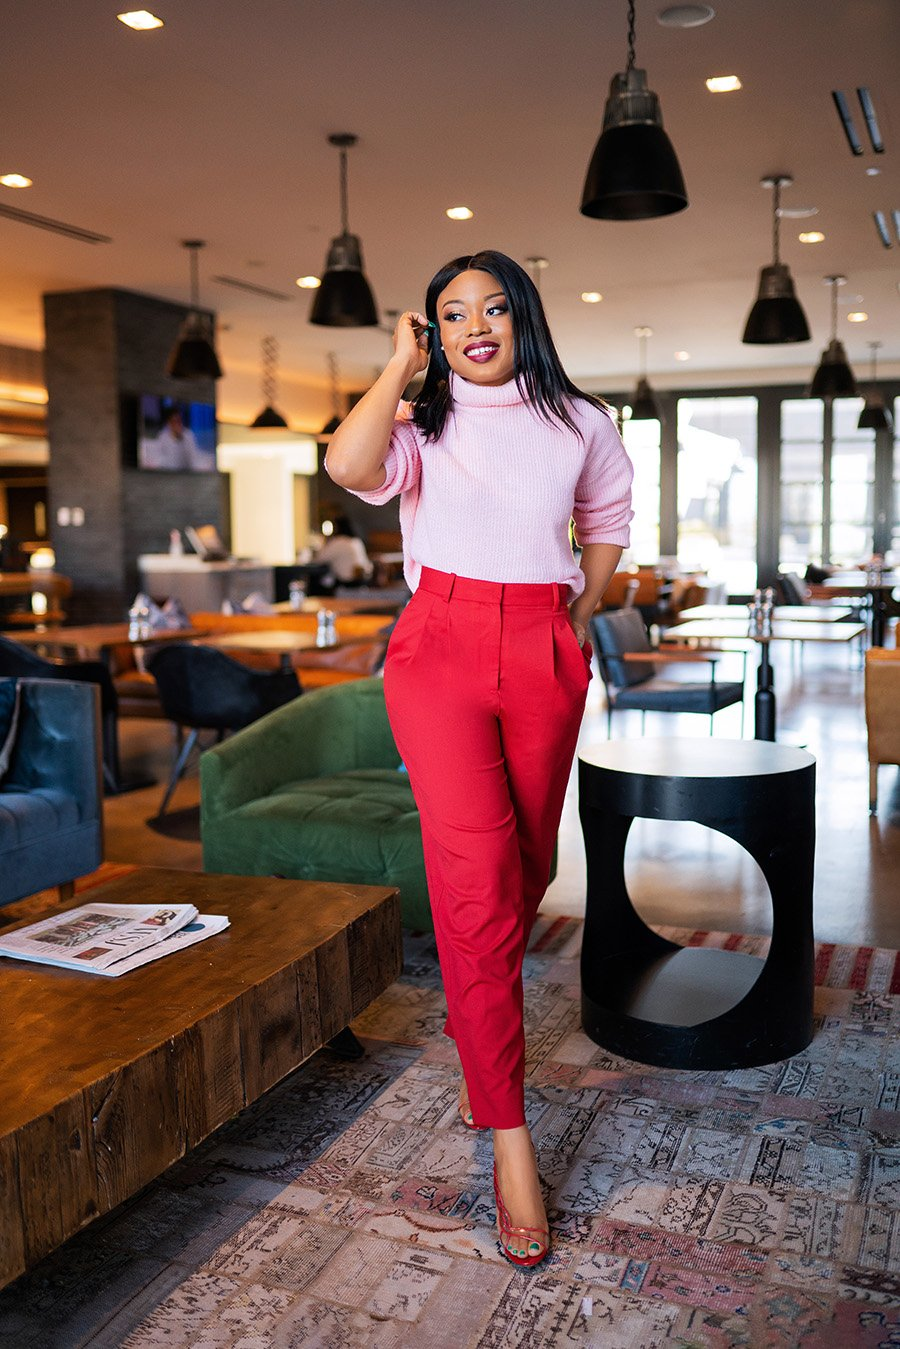 Stella-Adewunmi-of-Jadore-Fashion-shares-How-to-wear-pink-and-red-together